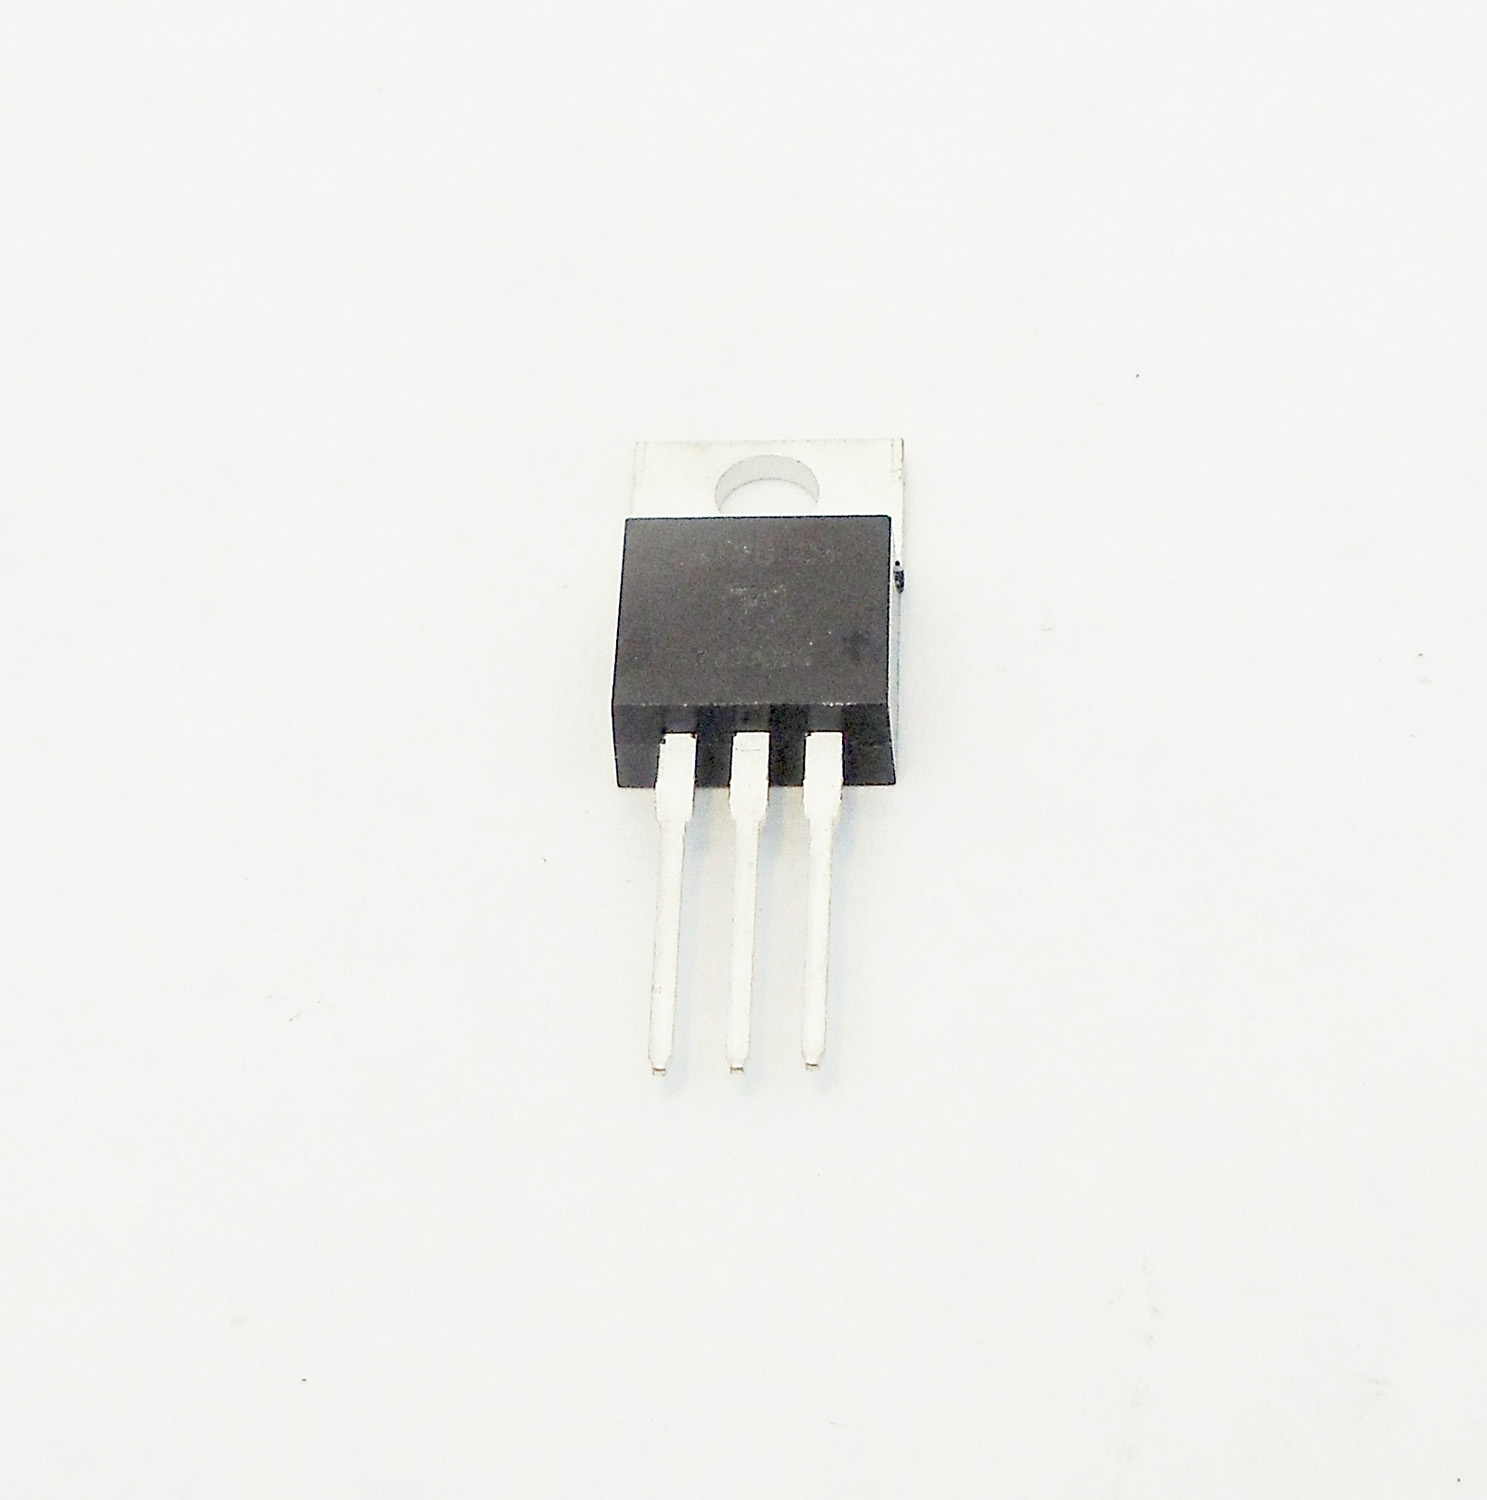 EKL - ERF2030PLUS 30 WATT RF TRANSISTOR PEP TO220